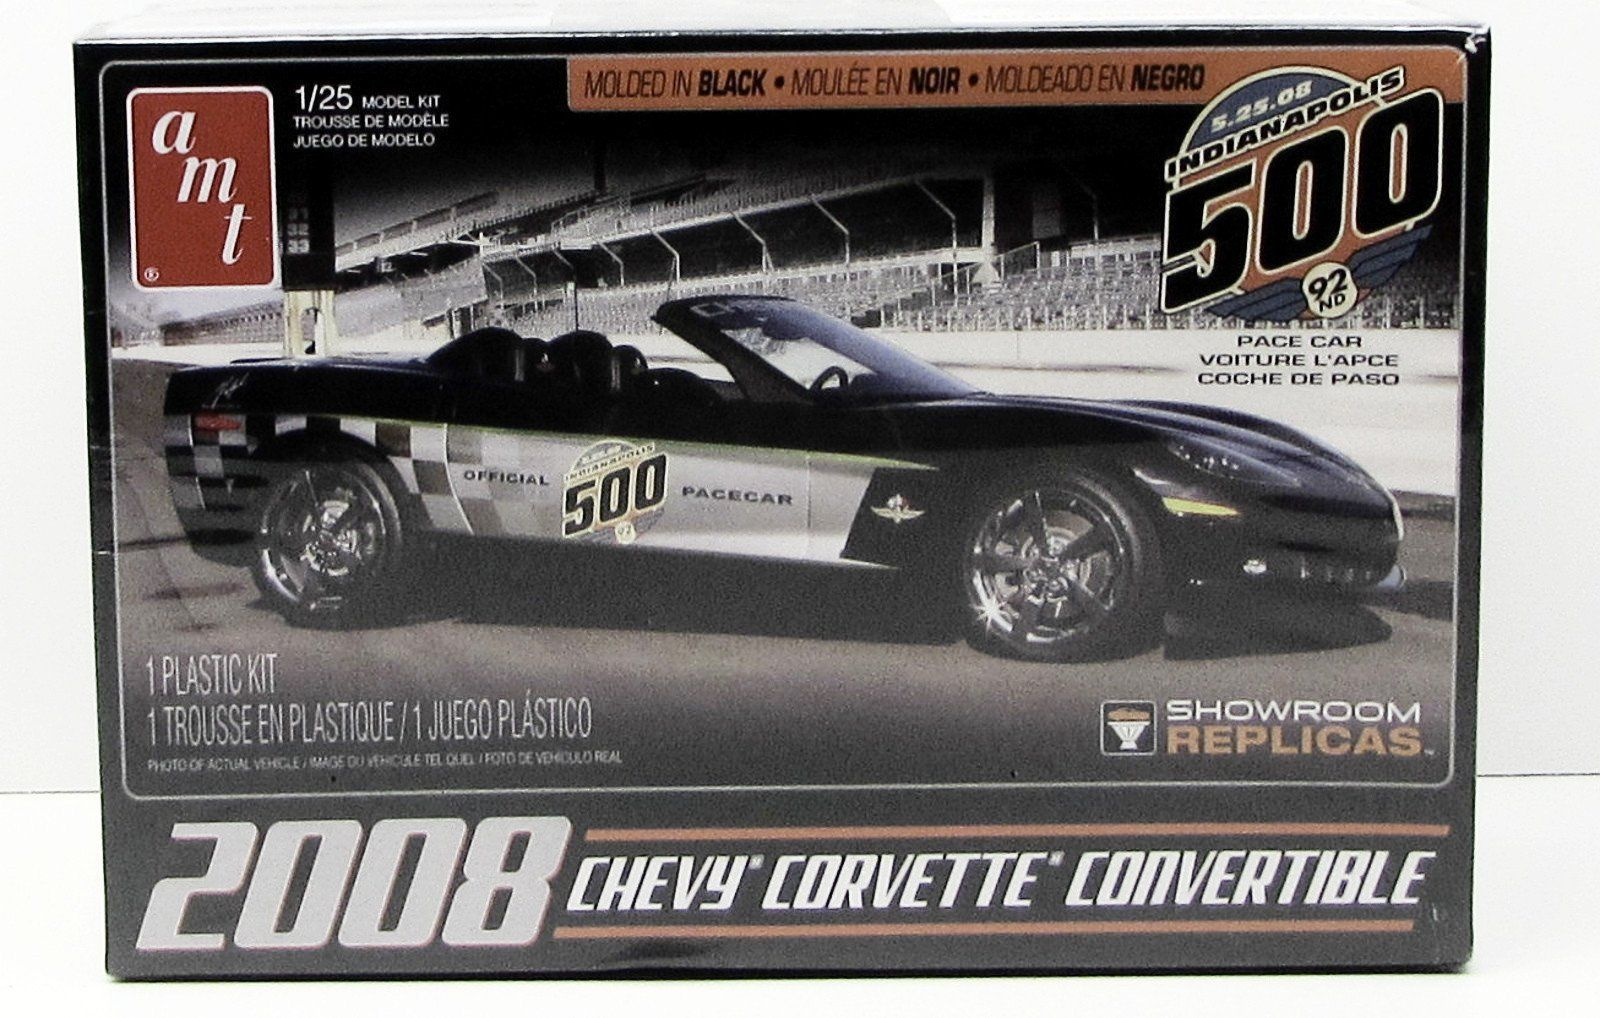 2008 Corvette Convertible AMT 816 1/25 New Car Plastic